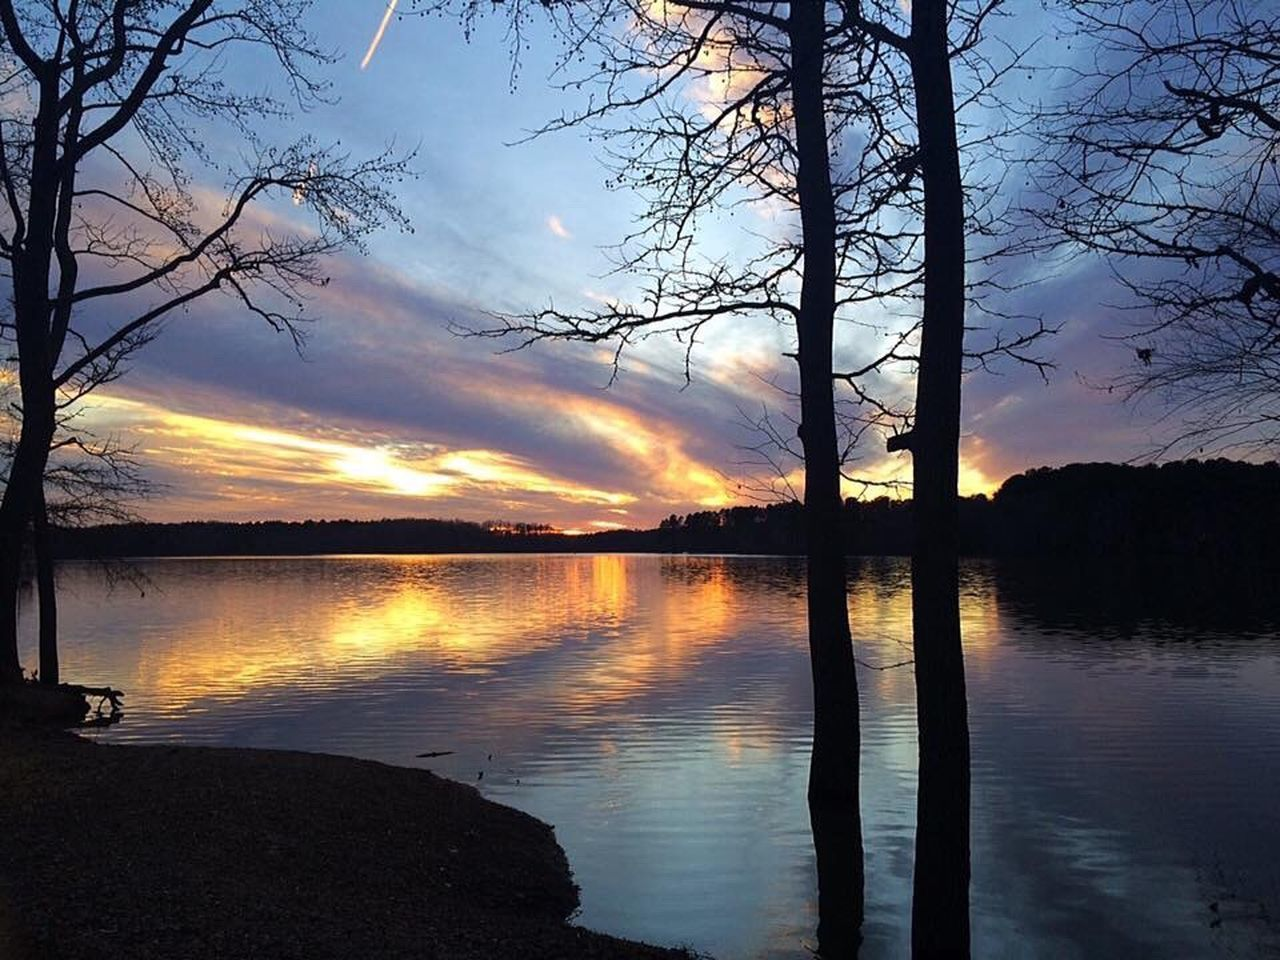 sunset, reflection, cloud - sky, sky, tree, silhouette, scenics, beauty in nature, orange color, water, nature, tranquility, dramatic sky, tranquil scene, no people, lake, outdoors, travel destinations, bare tree, day